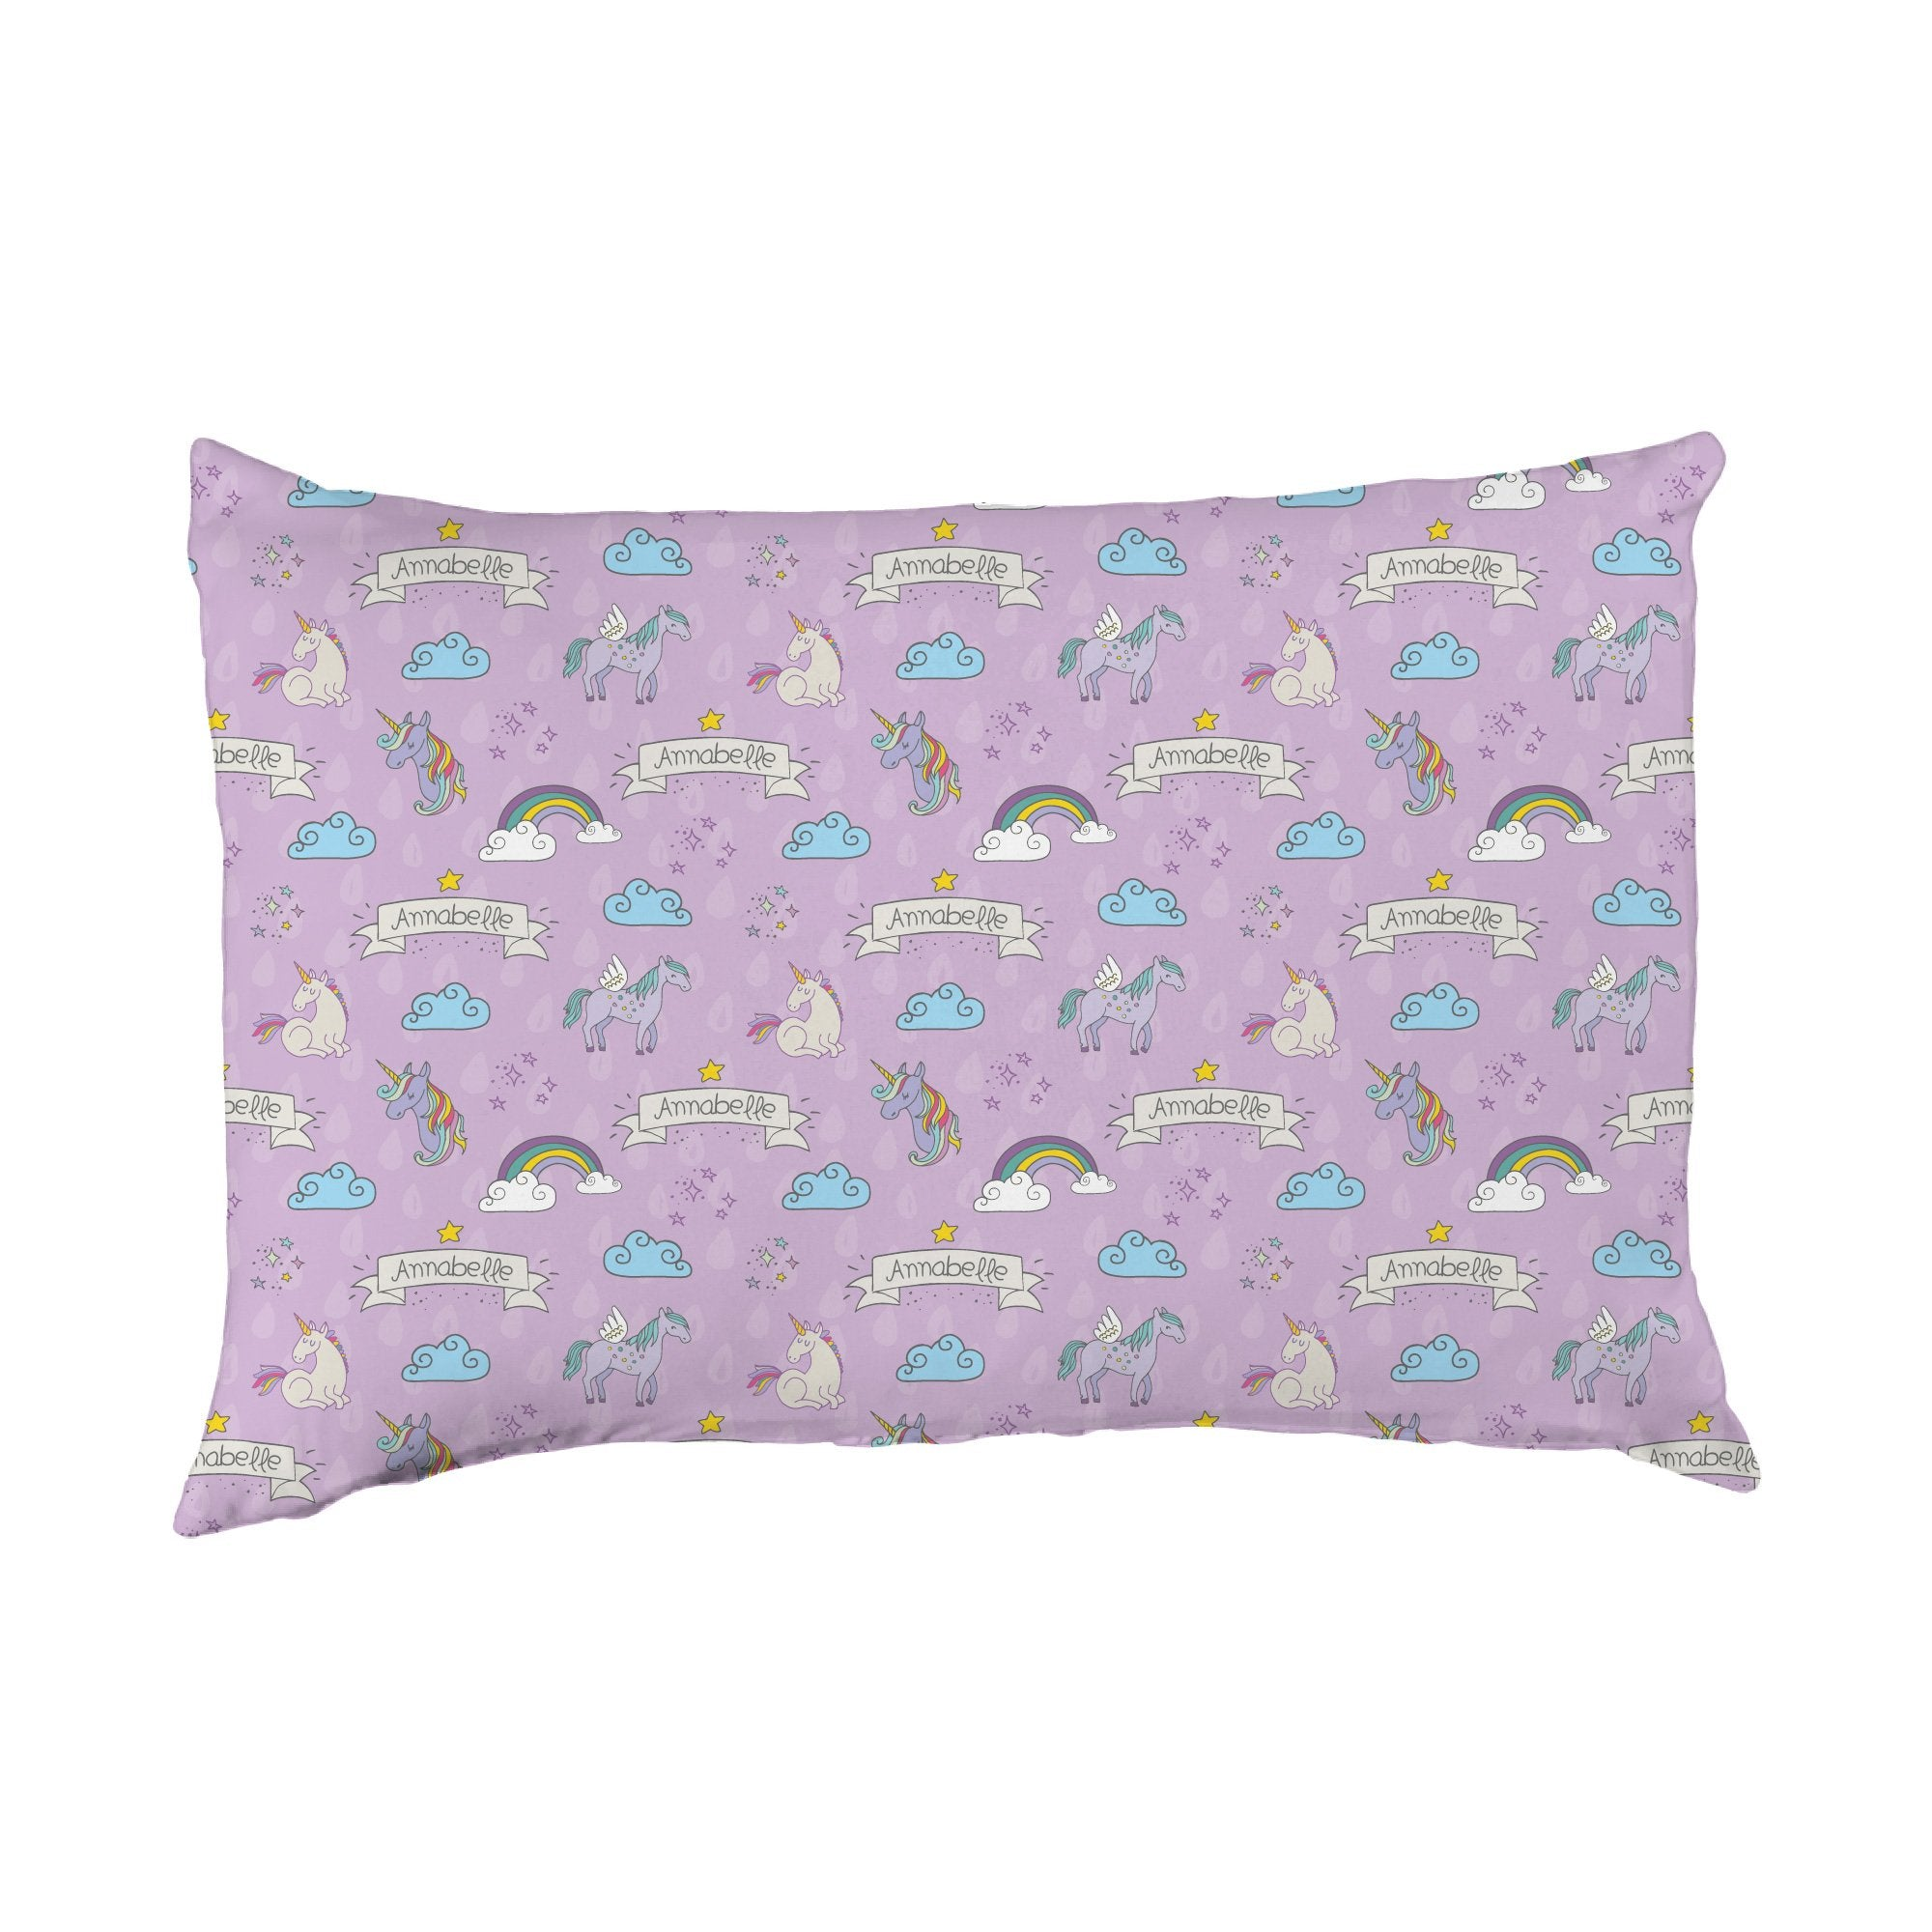 Ember's Unicorn and Rainbows | Big Kid Pillow Case